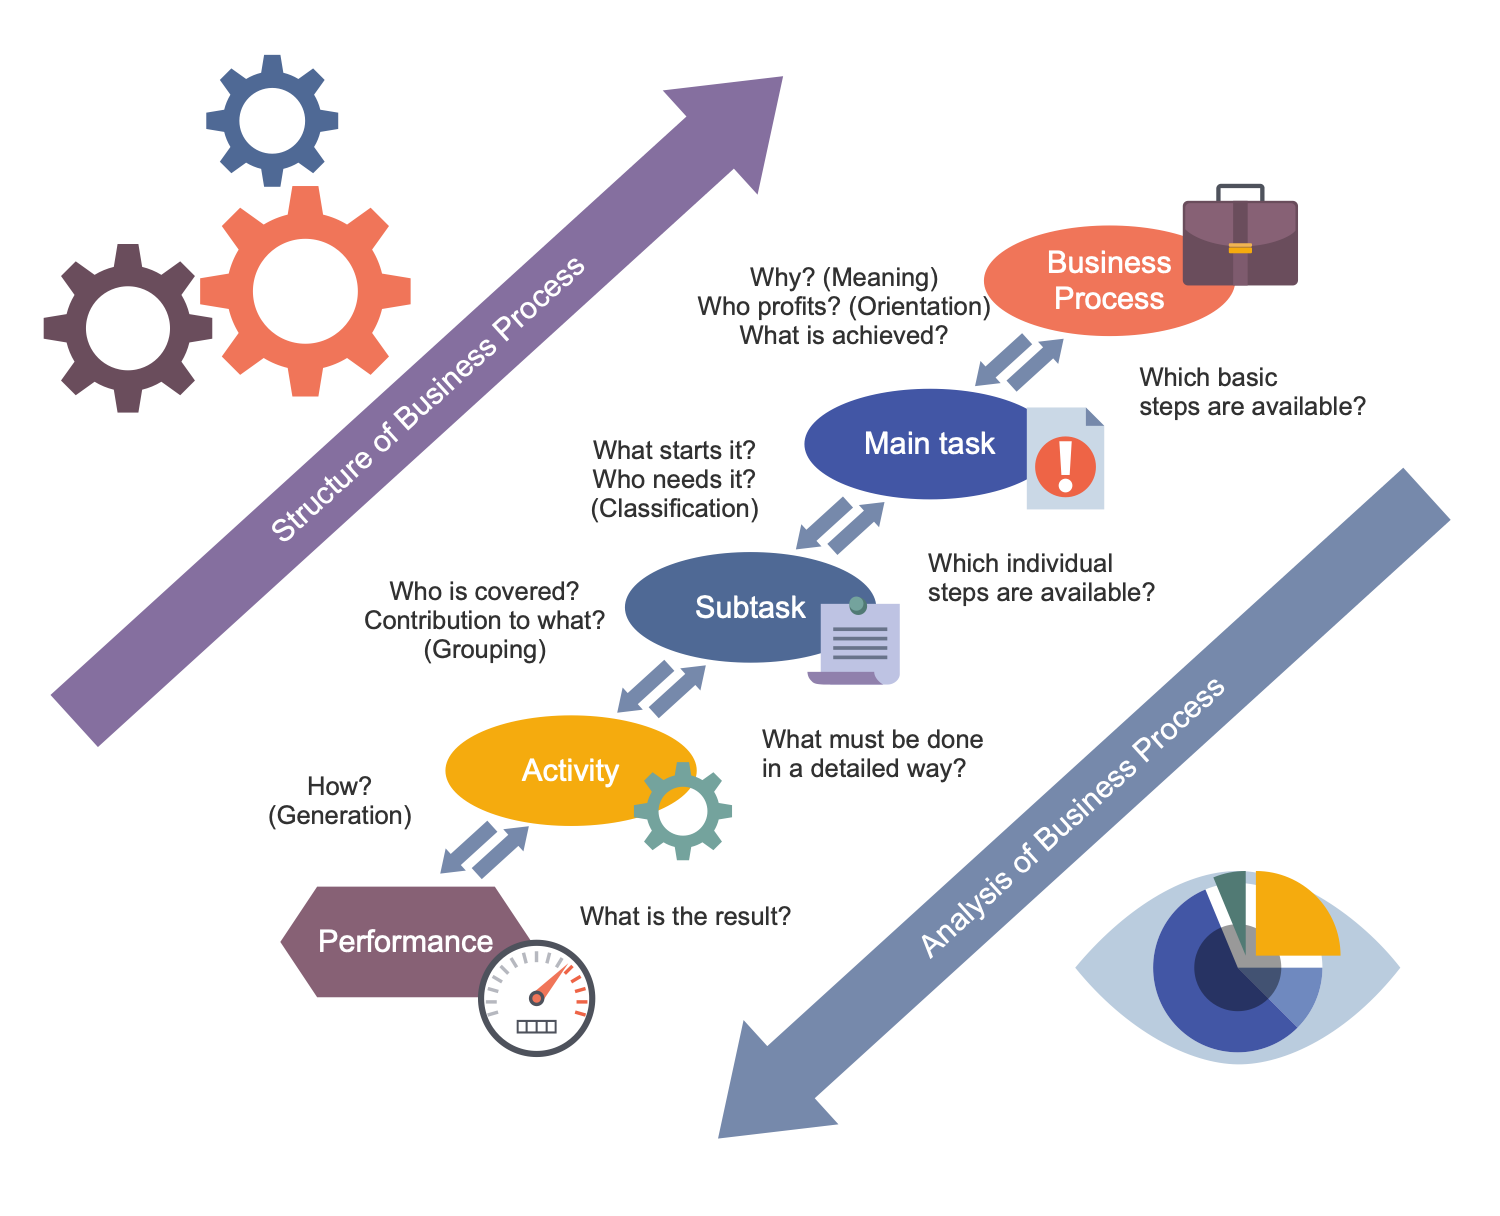 Business Process Workflow Diagram - Business Processes Structure and Analysis